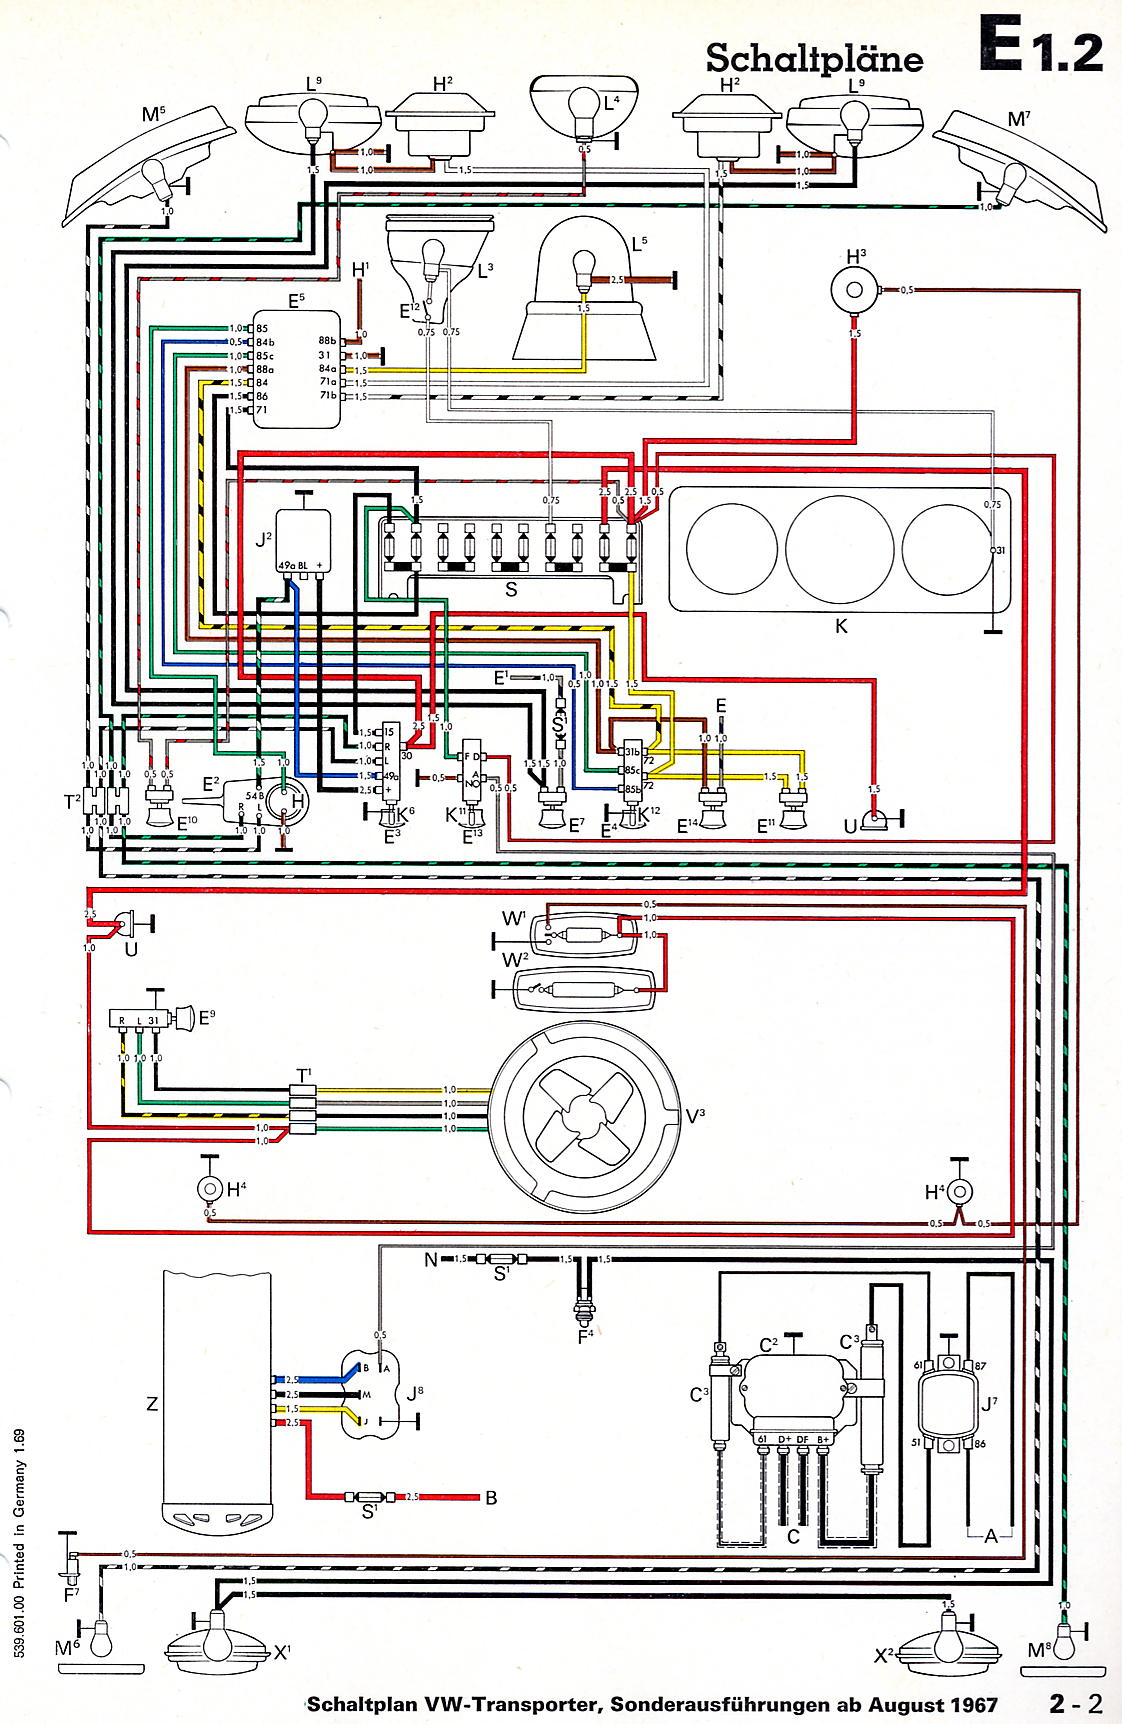 Vw Transporter T5 Fuse Diagram Volkswagen Car T4 Box For Sale Charging System Tests Source Layout Auto Electrical Wiring